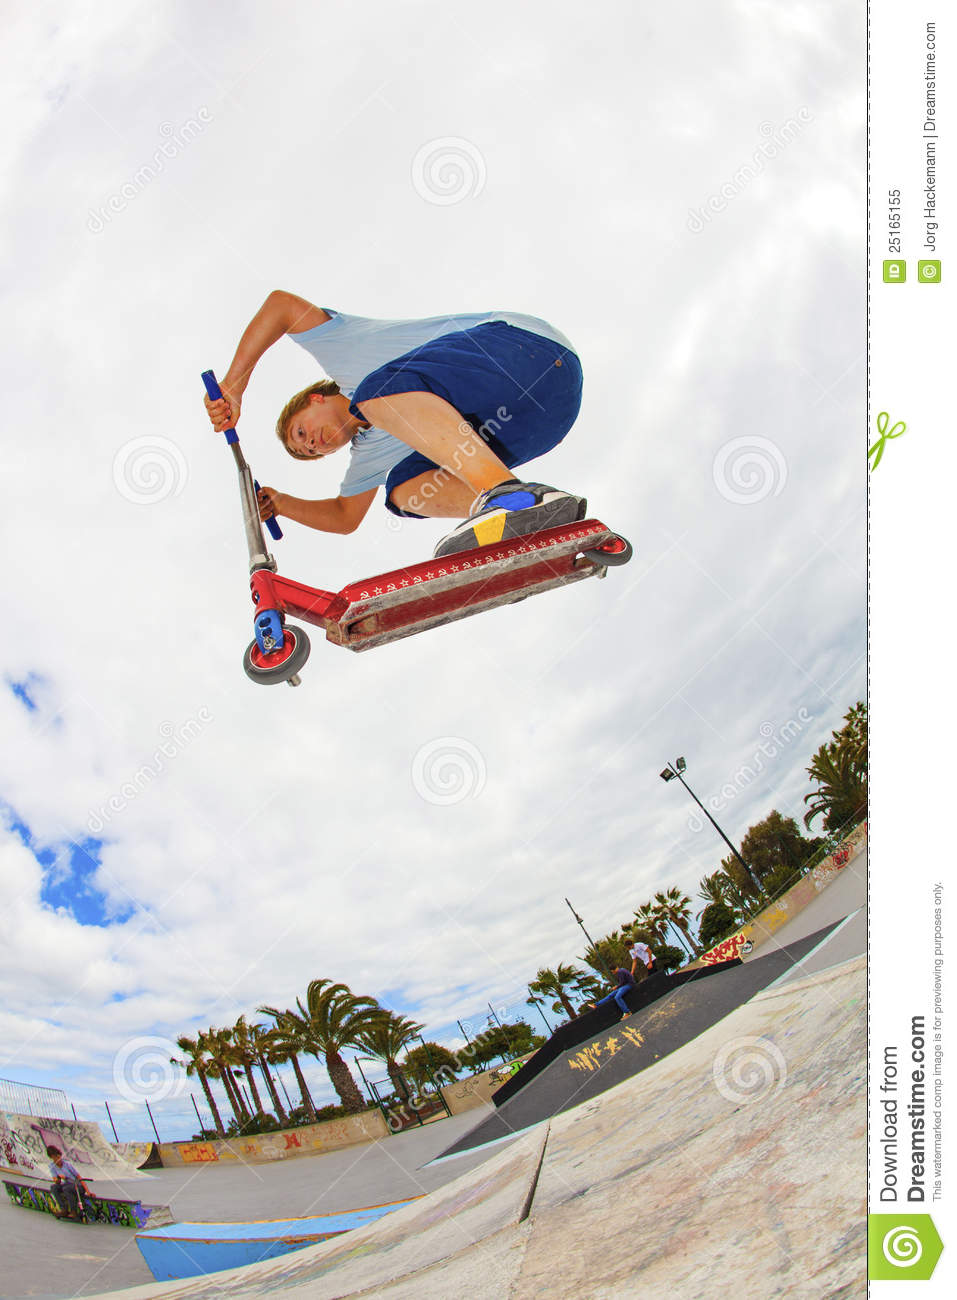 boy rides his scooter at the skate park royalty free stock photo image 25165155. Black Bedroom Furniture Sets. Home Design Ideas